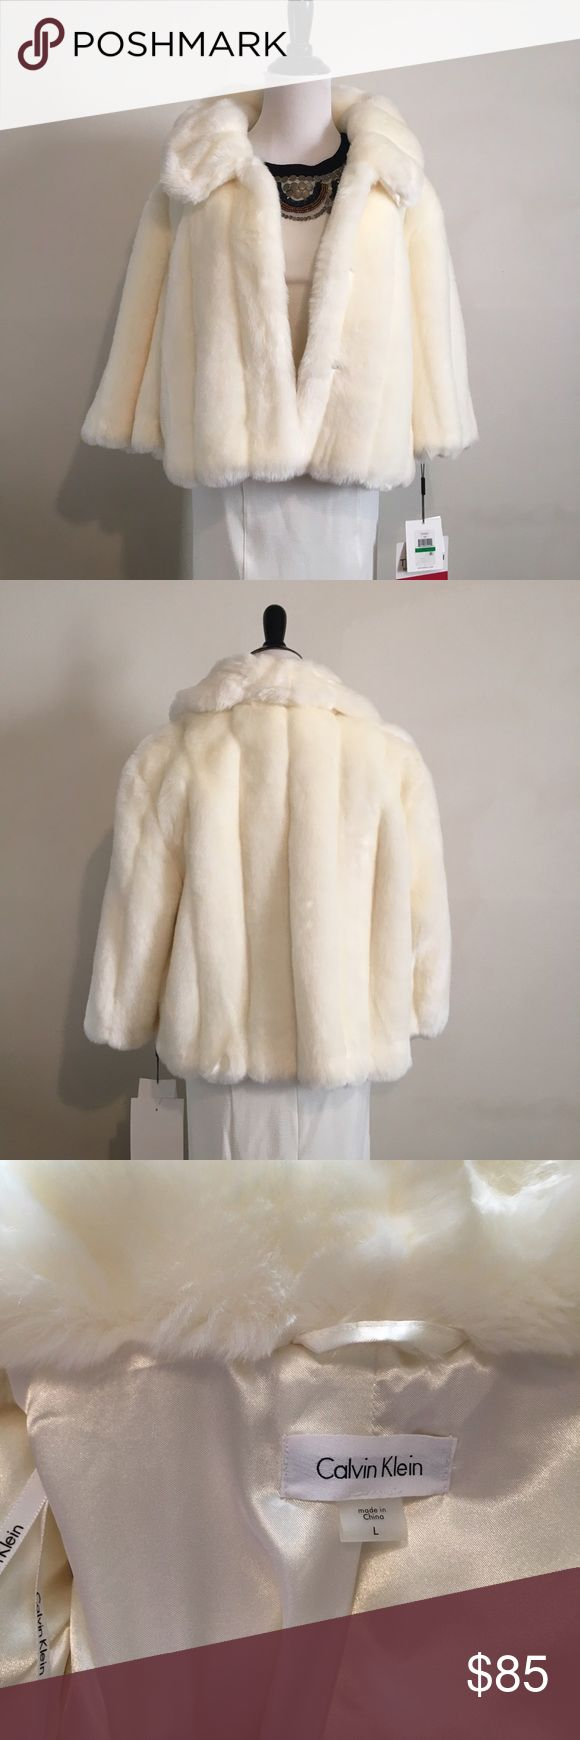 Calvin Klein Faux fur Bolero Extra lush faux fur in ivory lined with satin made by Calvin Klein. Extra buttons and tags attached. Don't miss this super soft and luxurious shawl perfect for dressing up outfits. Jackets & Coats Capes